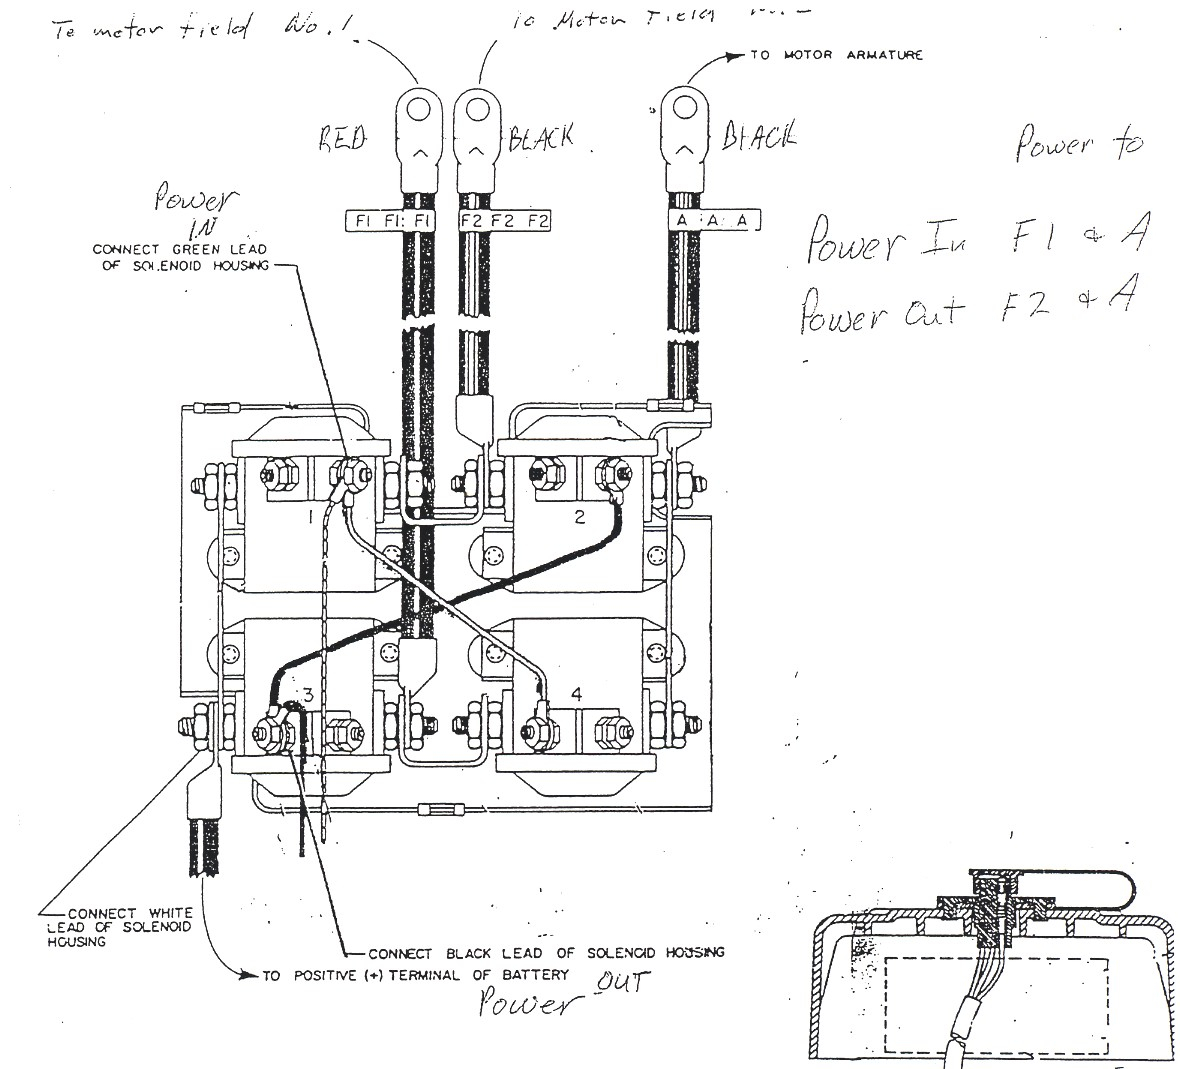 Warn Winch Solenoid Wiring - Wiring Diagrams Hubs - Warn Winch Wiring Diagram 4 Solenoid